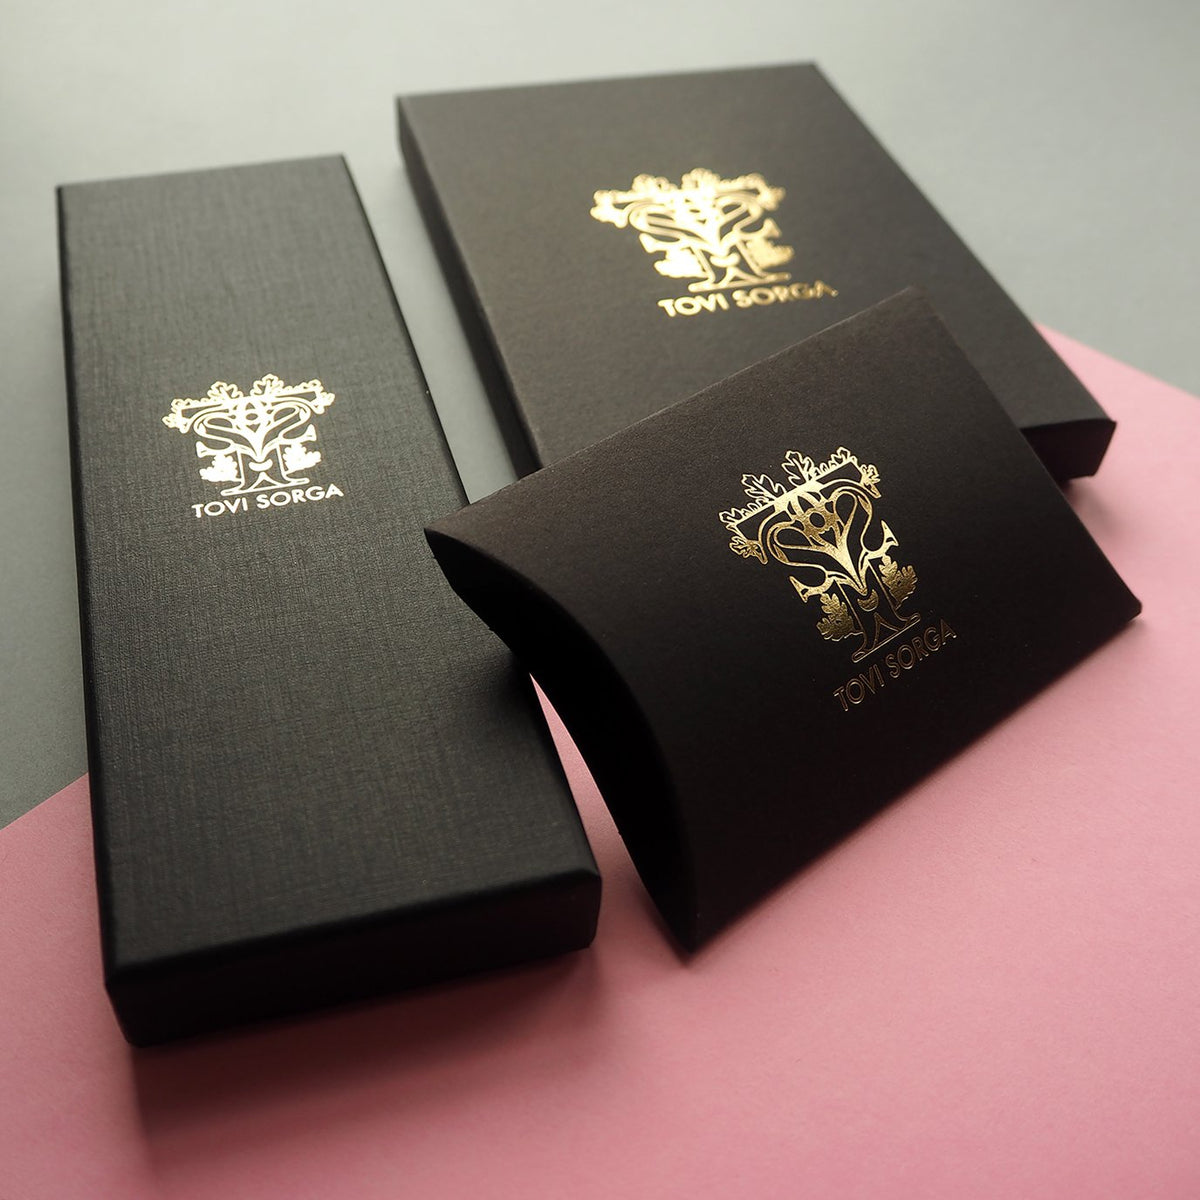 Luxury gift boxes UK by accessories designer leather goods by Tovi Sorga